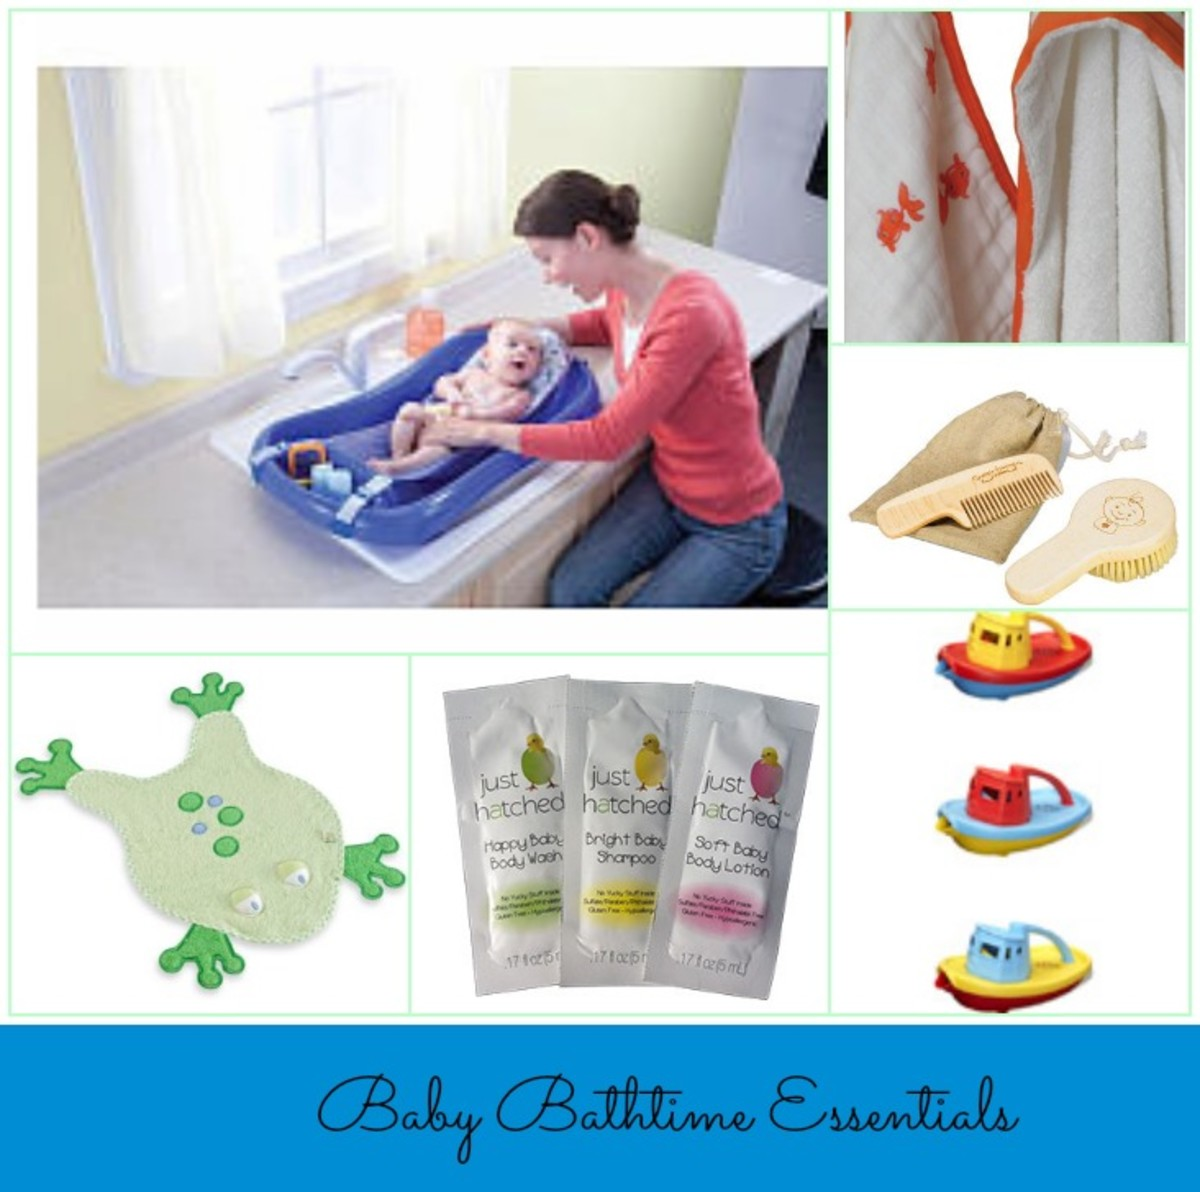 bathtime, baby bath items, aden & anais, first years, green toys, just hatched, bath Luv, baby's bath